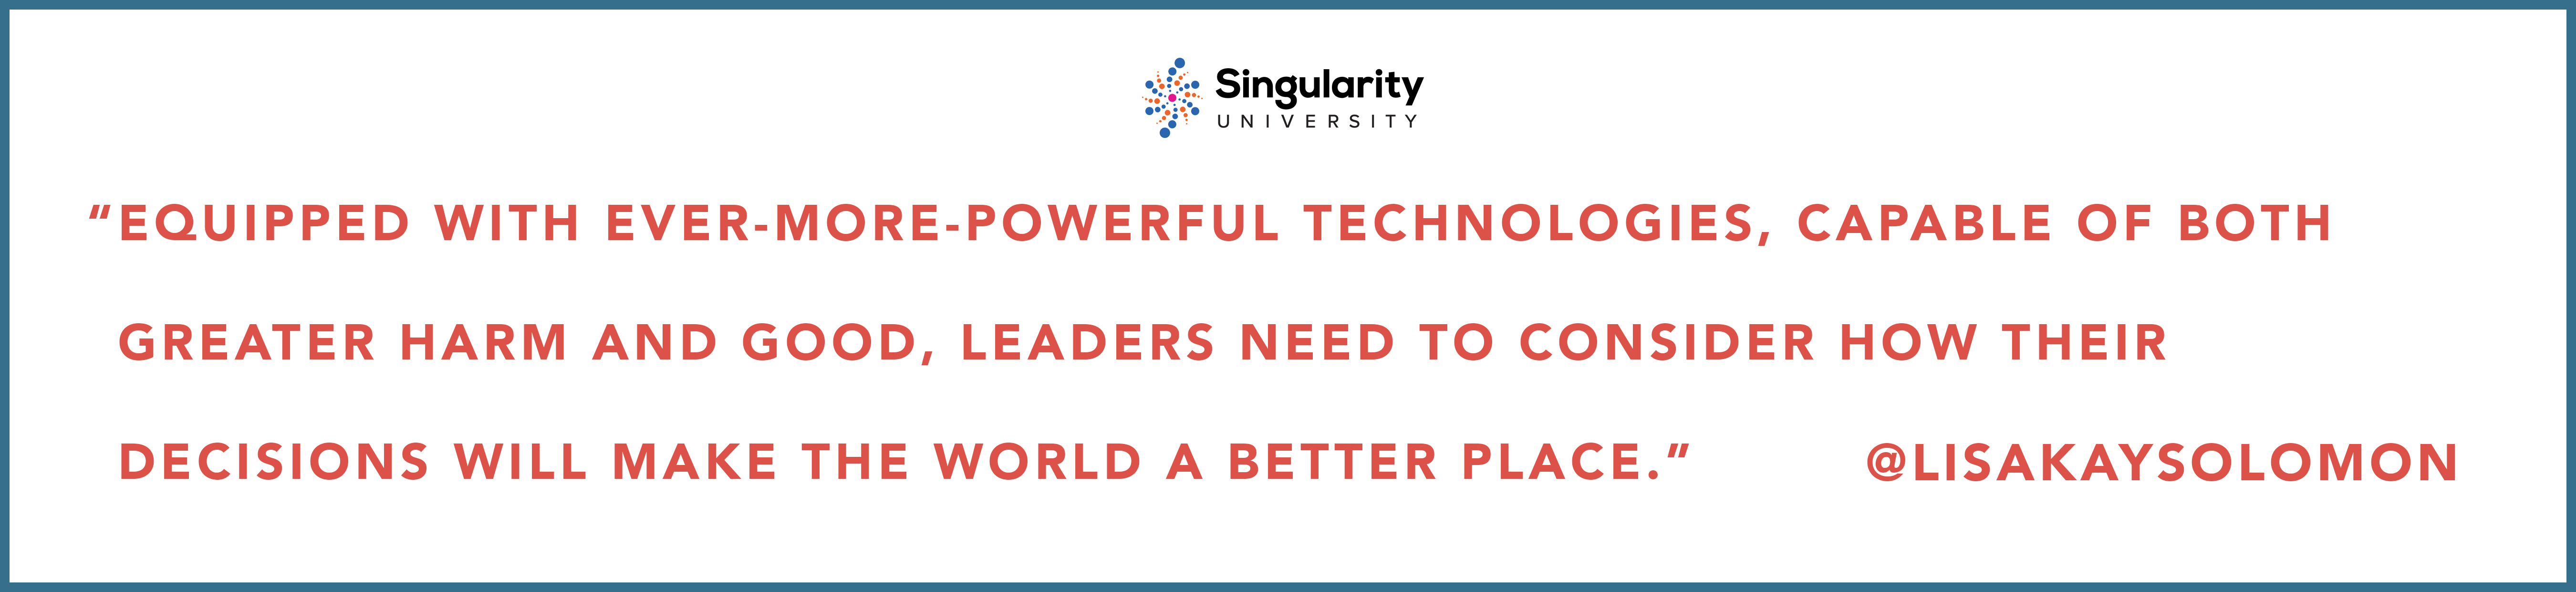 Equipped-with-ever-more-powerful-technologies-capable-of-both-greater-harm-and-good-leaders-need-to-consider-how-their-decisions-will-make-the-world-a-better-place-Lisa-Kay-Solomon